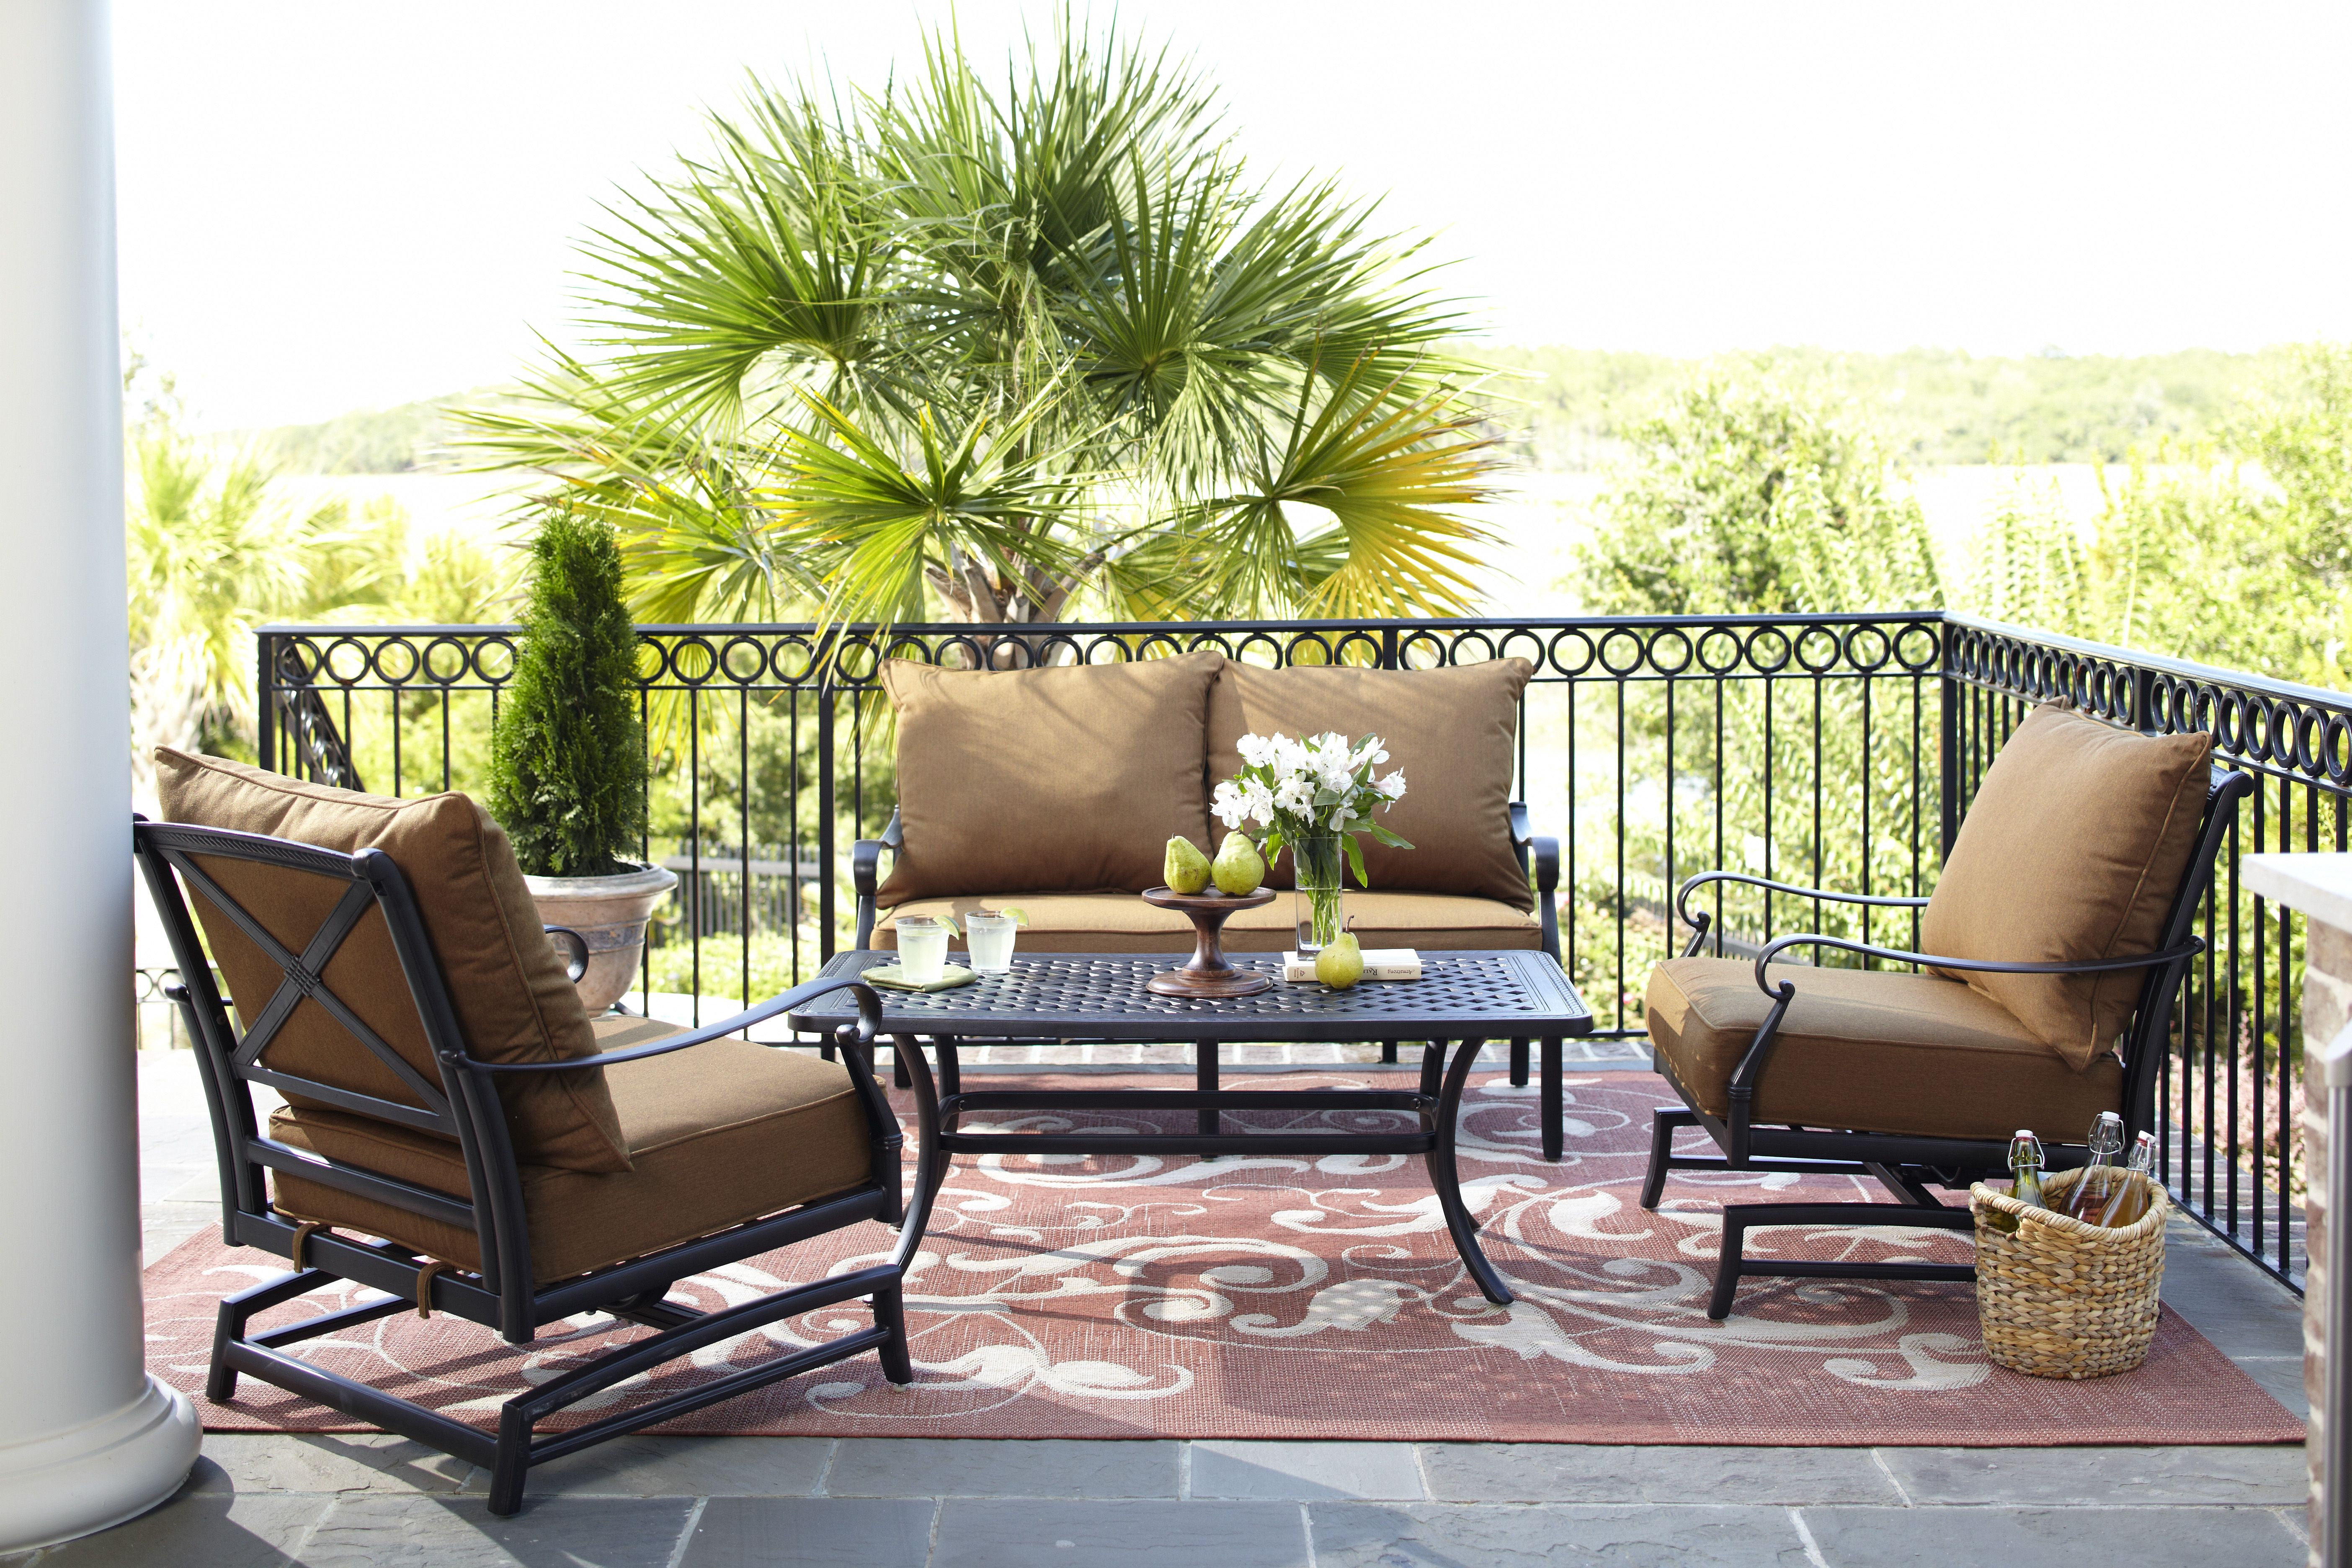 Mix and match the Whitley Place allen roth patio set to fit your